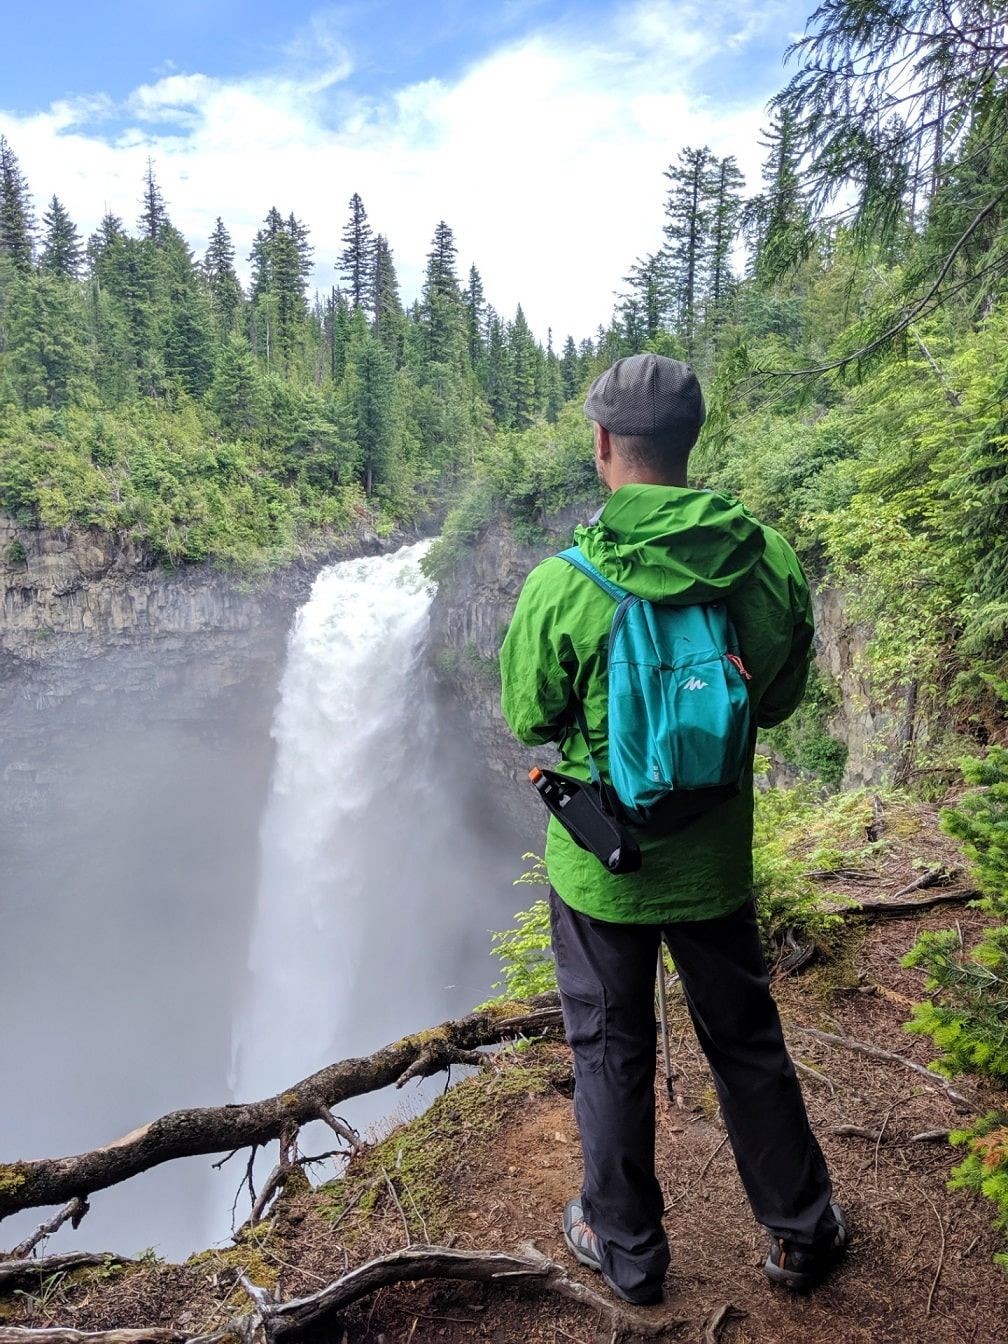 JR standing in front of Helmcken Falls in a green jacket and green backpack